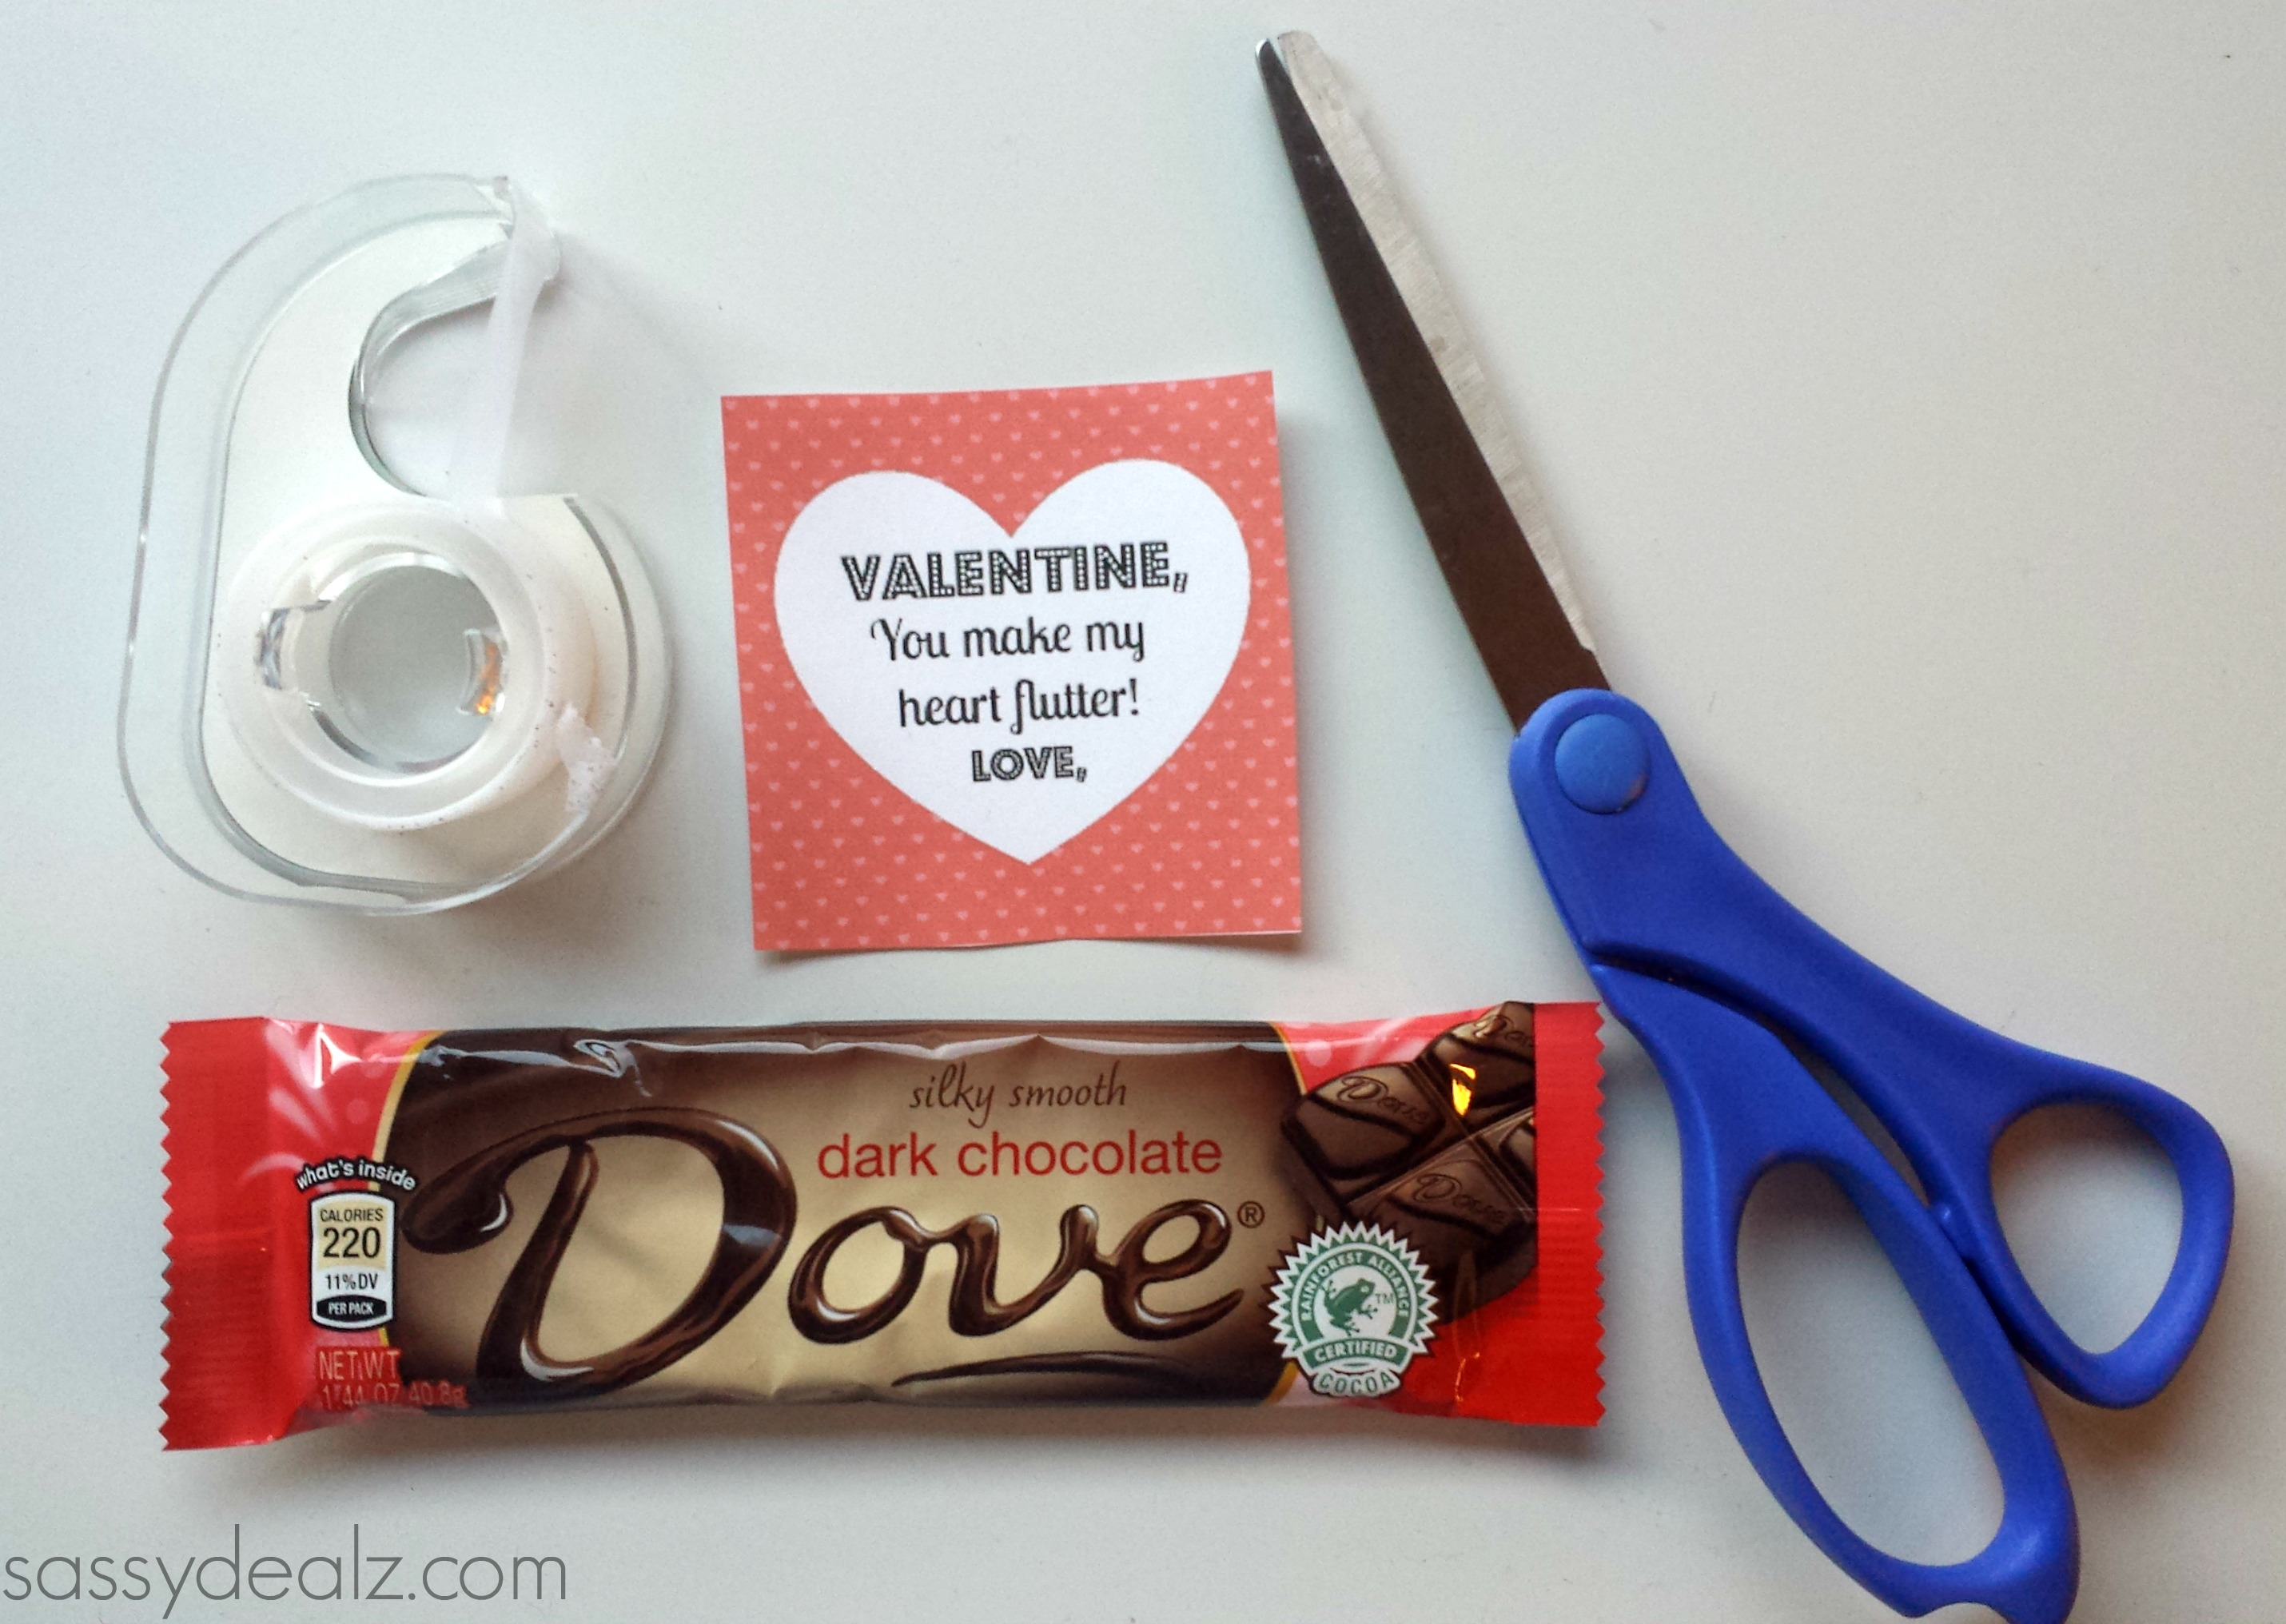 dove chocolate bar valentine's day gift idea - crafty morning, Ideas